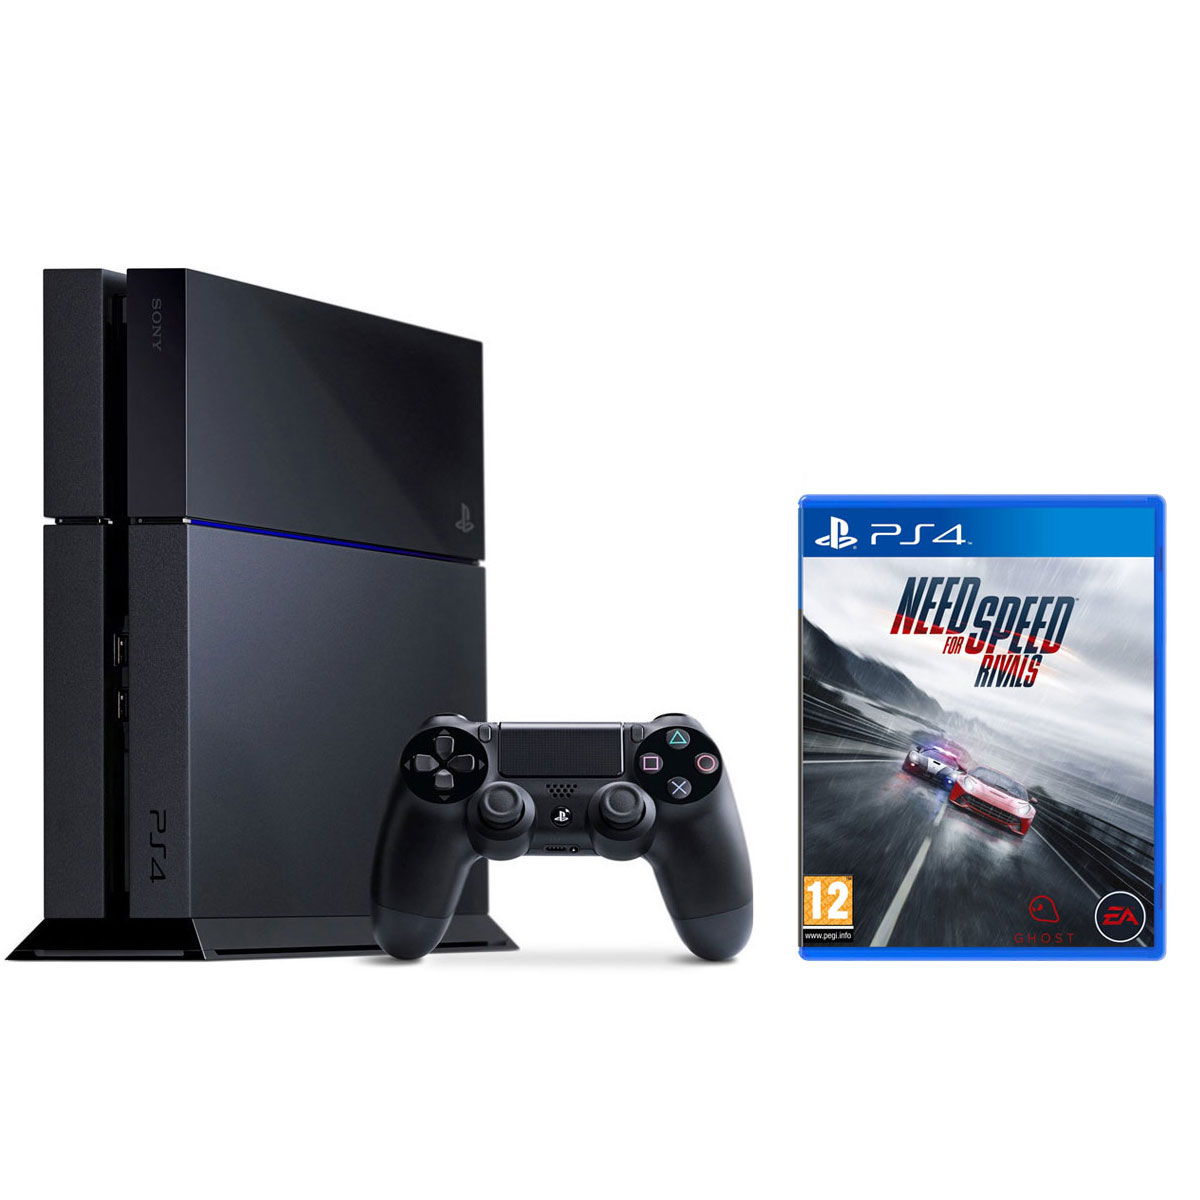 sony playstation 4 need for speed rivals console de jeux sony computer entertainment sur ldlc. Black Bedroom Furniture Sets. Home Design Ideas